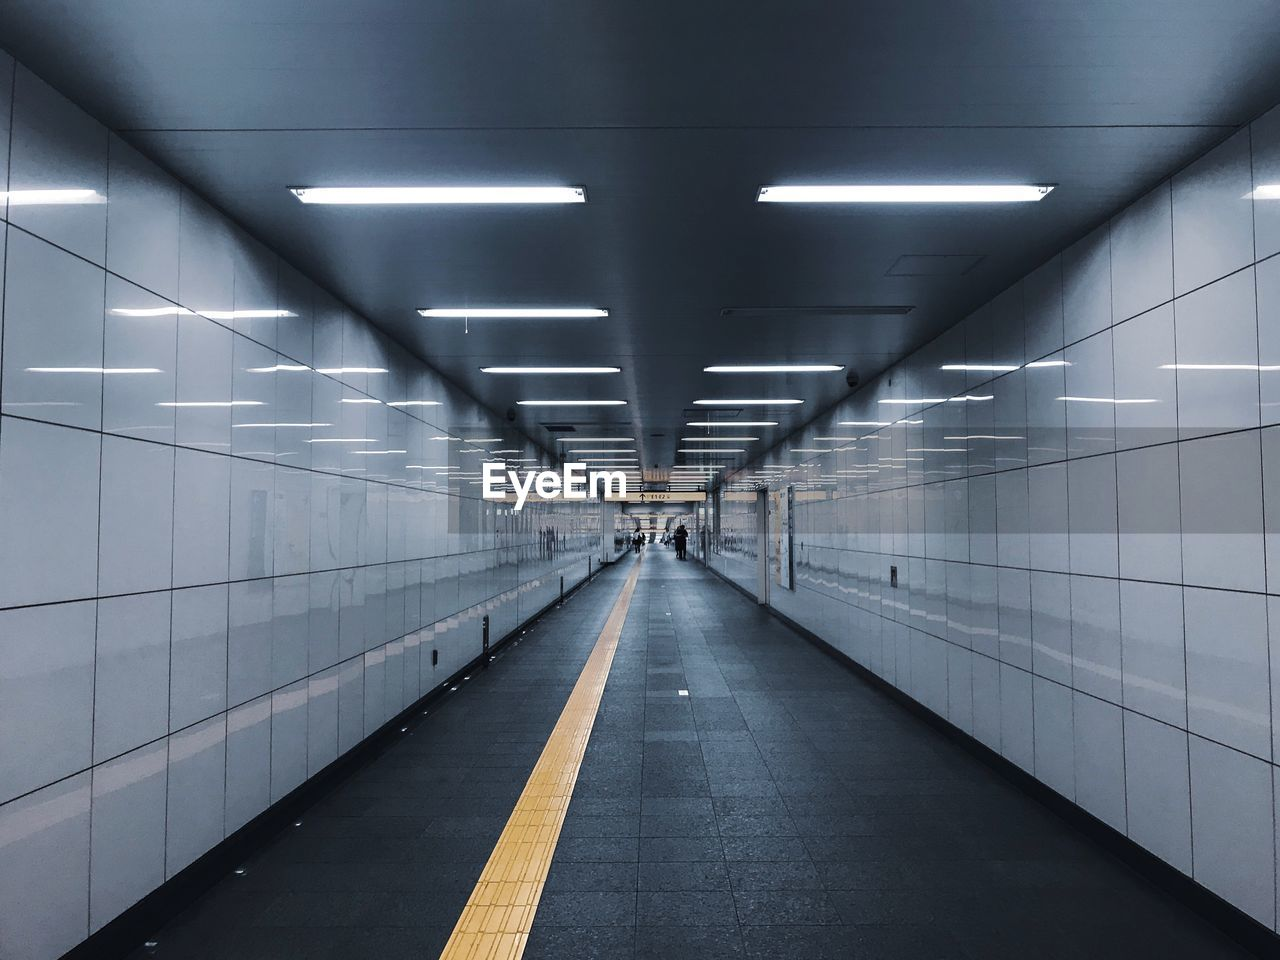 illuminated, direction, architecture, the way forward, transportation, lighting equipment, indoors, diminishing perspective, ceiling, wall - building feature, built structure, flooring, tile, tunnel, subway, light, empty, public transportation, electric light, no people, underground walkway, tiled floor, underpass